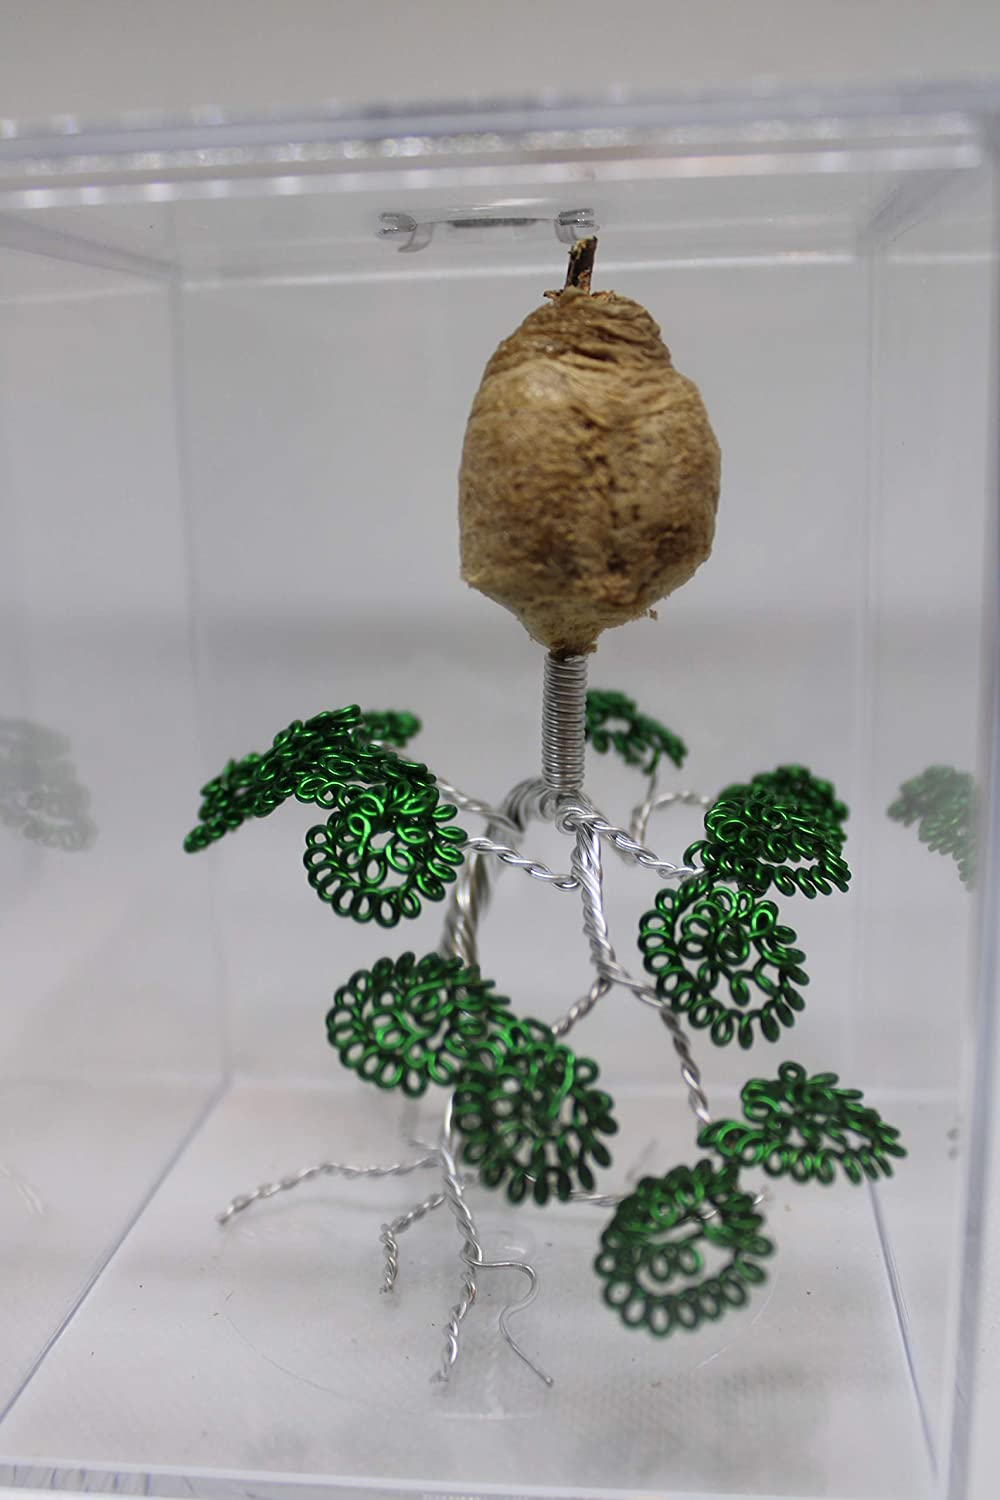 Live Chinese Ootheca Praying Mantis Egg Case Mantid Hatching Habitat On Wire Art in Acrylic Box (The Bonsai Tree)